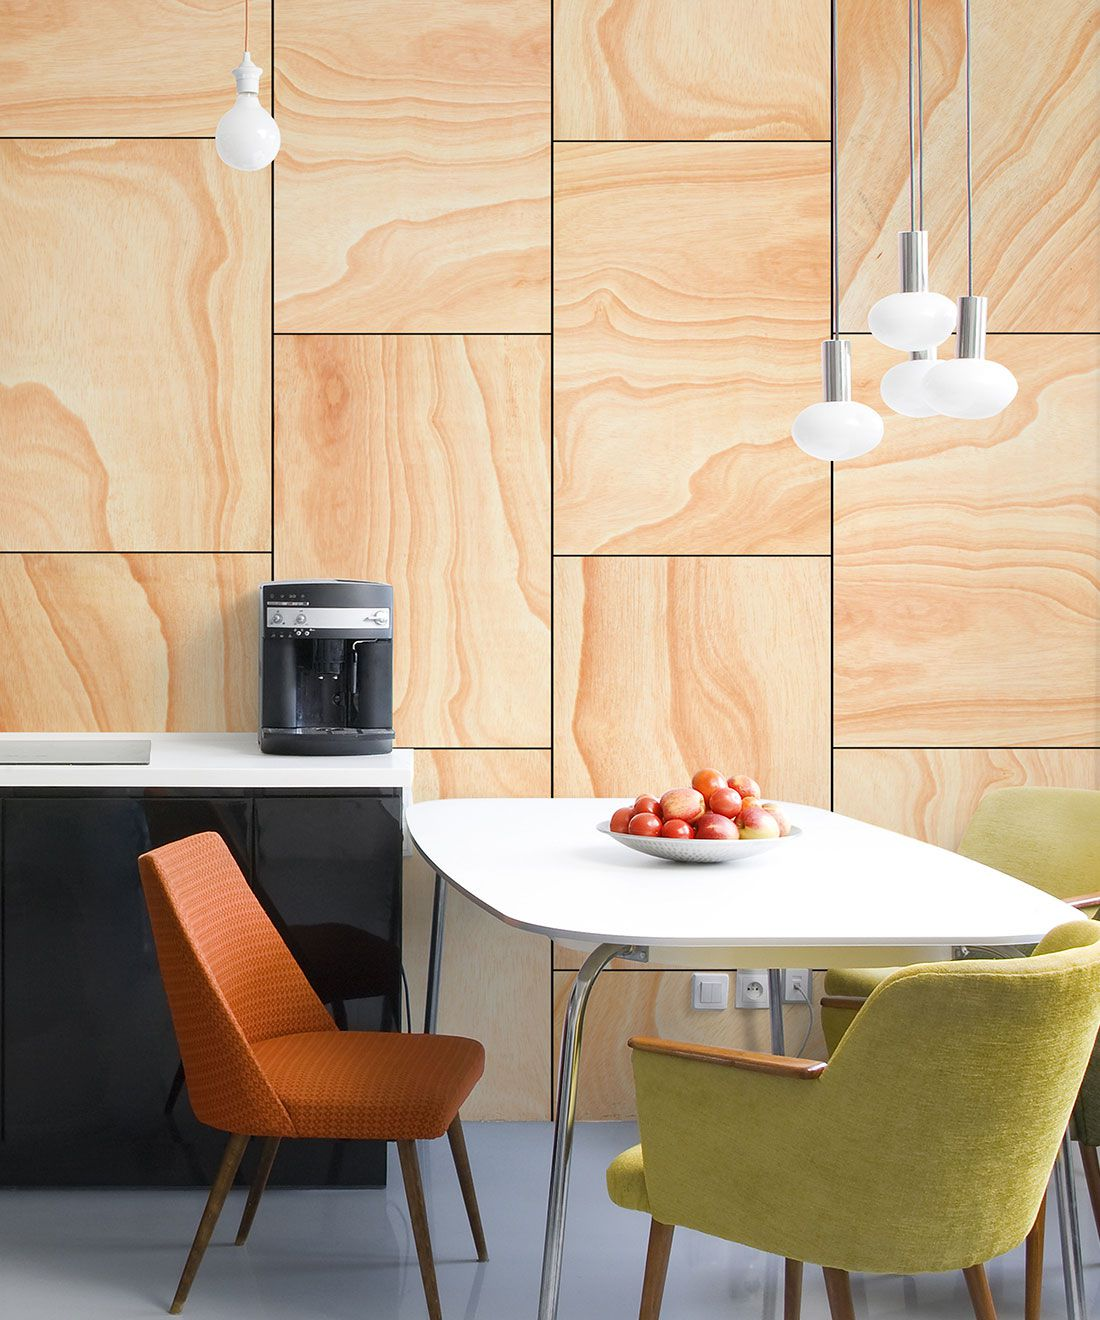 Ply Wood Wallpaper • Light Brown Wallpaper •Wood Grain Wallpaper insitu with green chair and orange chair around a small white table